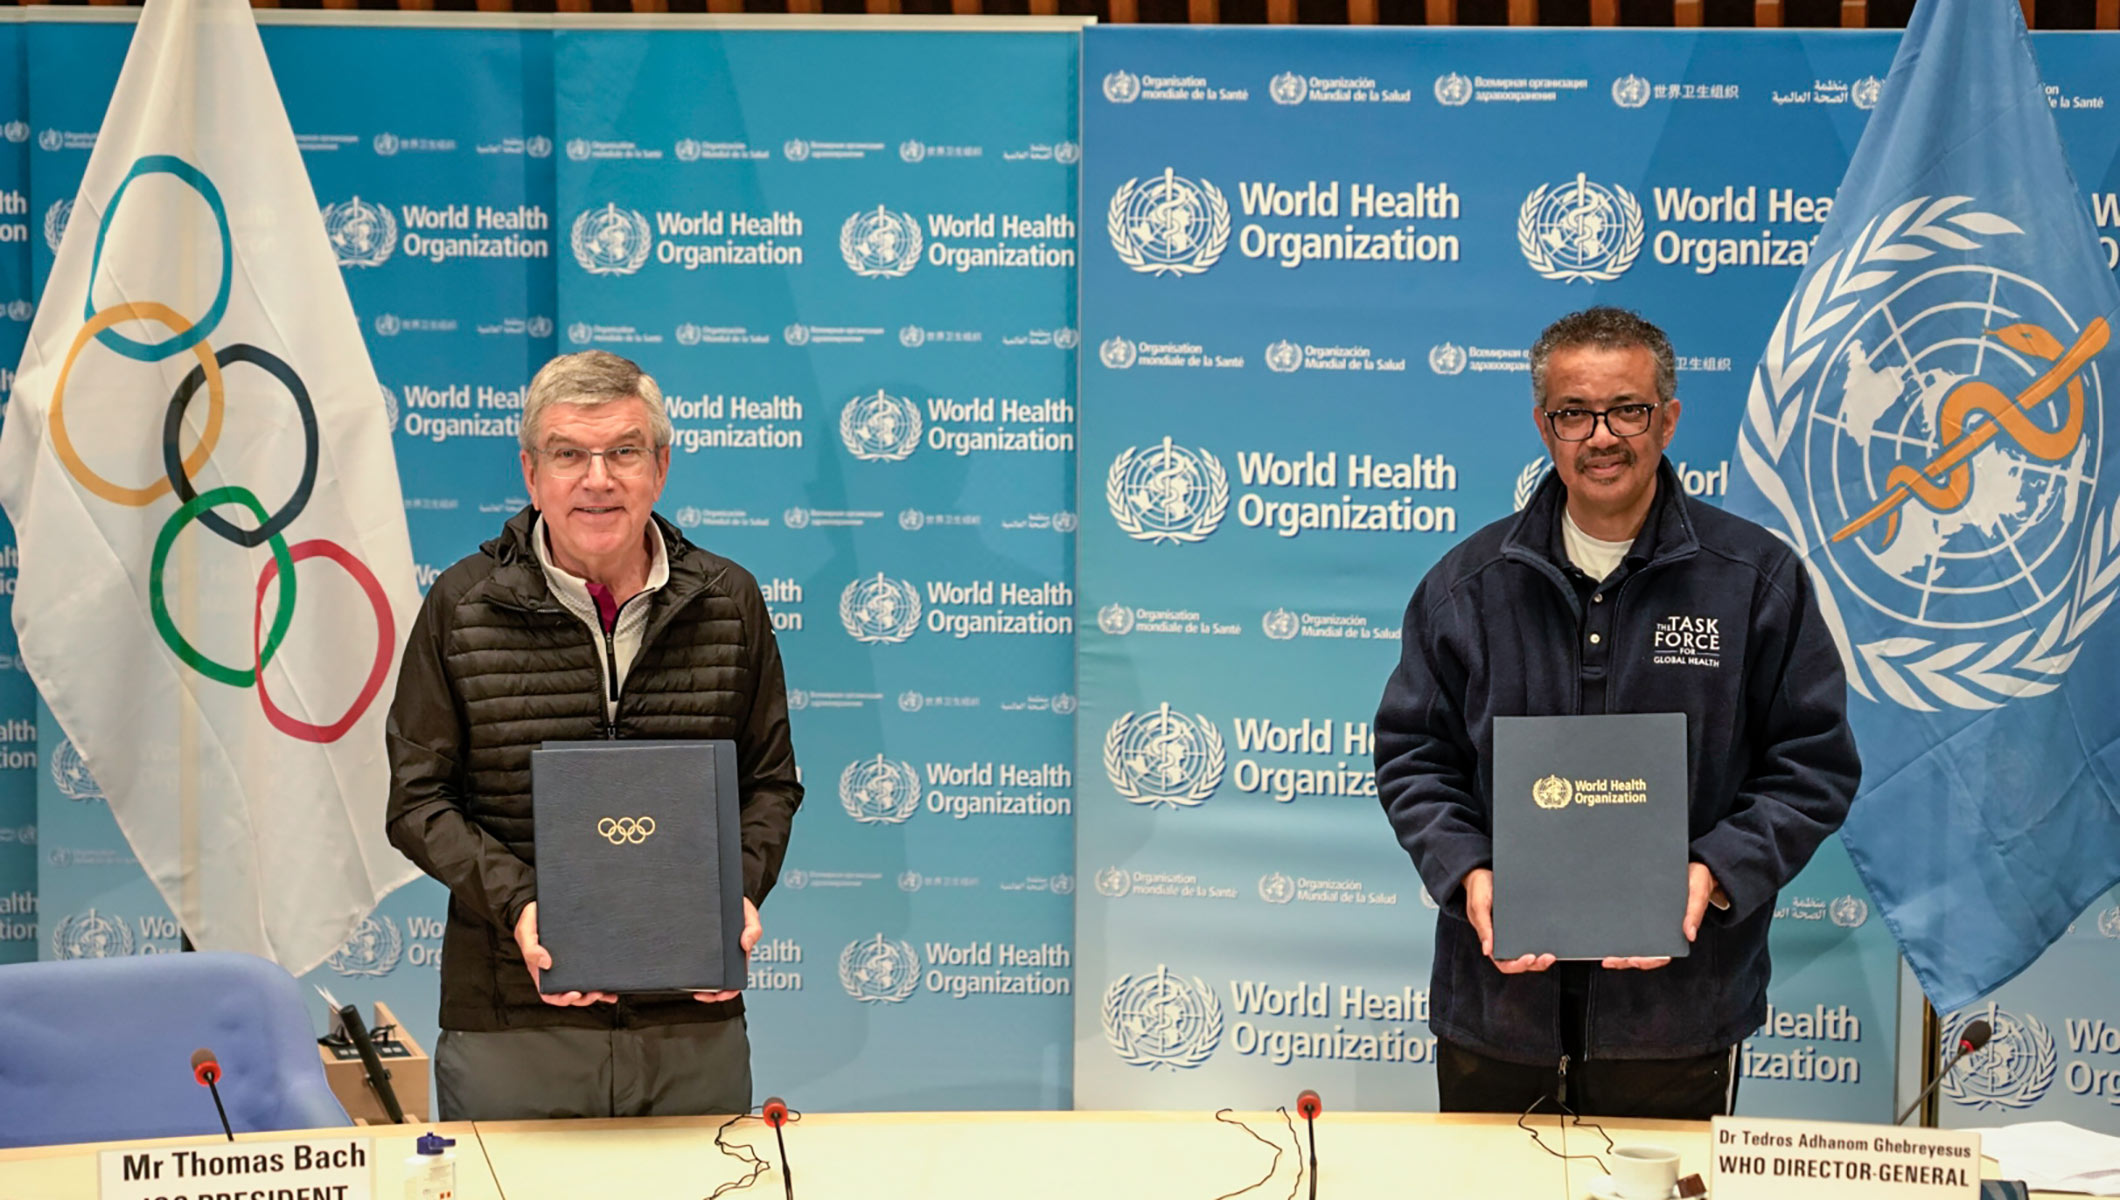 IOC AND WHO STRENGTHEN TIES TO ADVOCATE HEALTHY LIFESTYLES